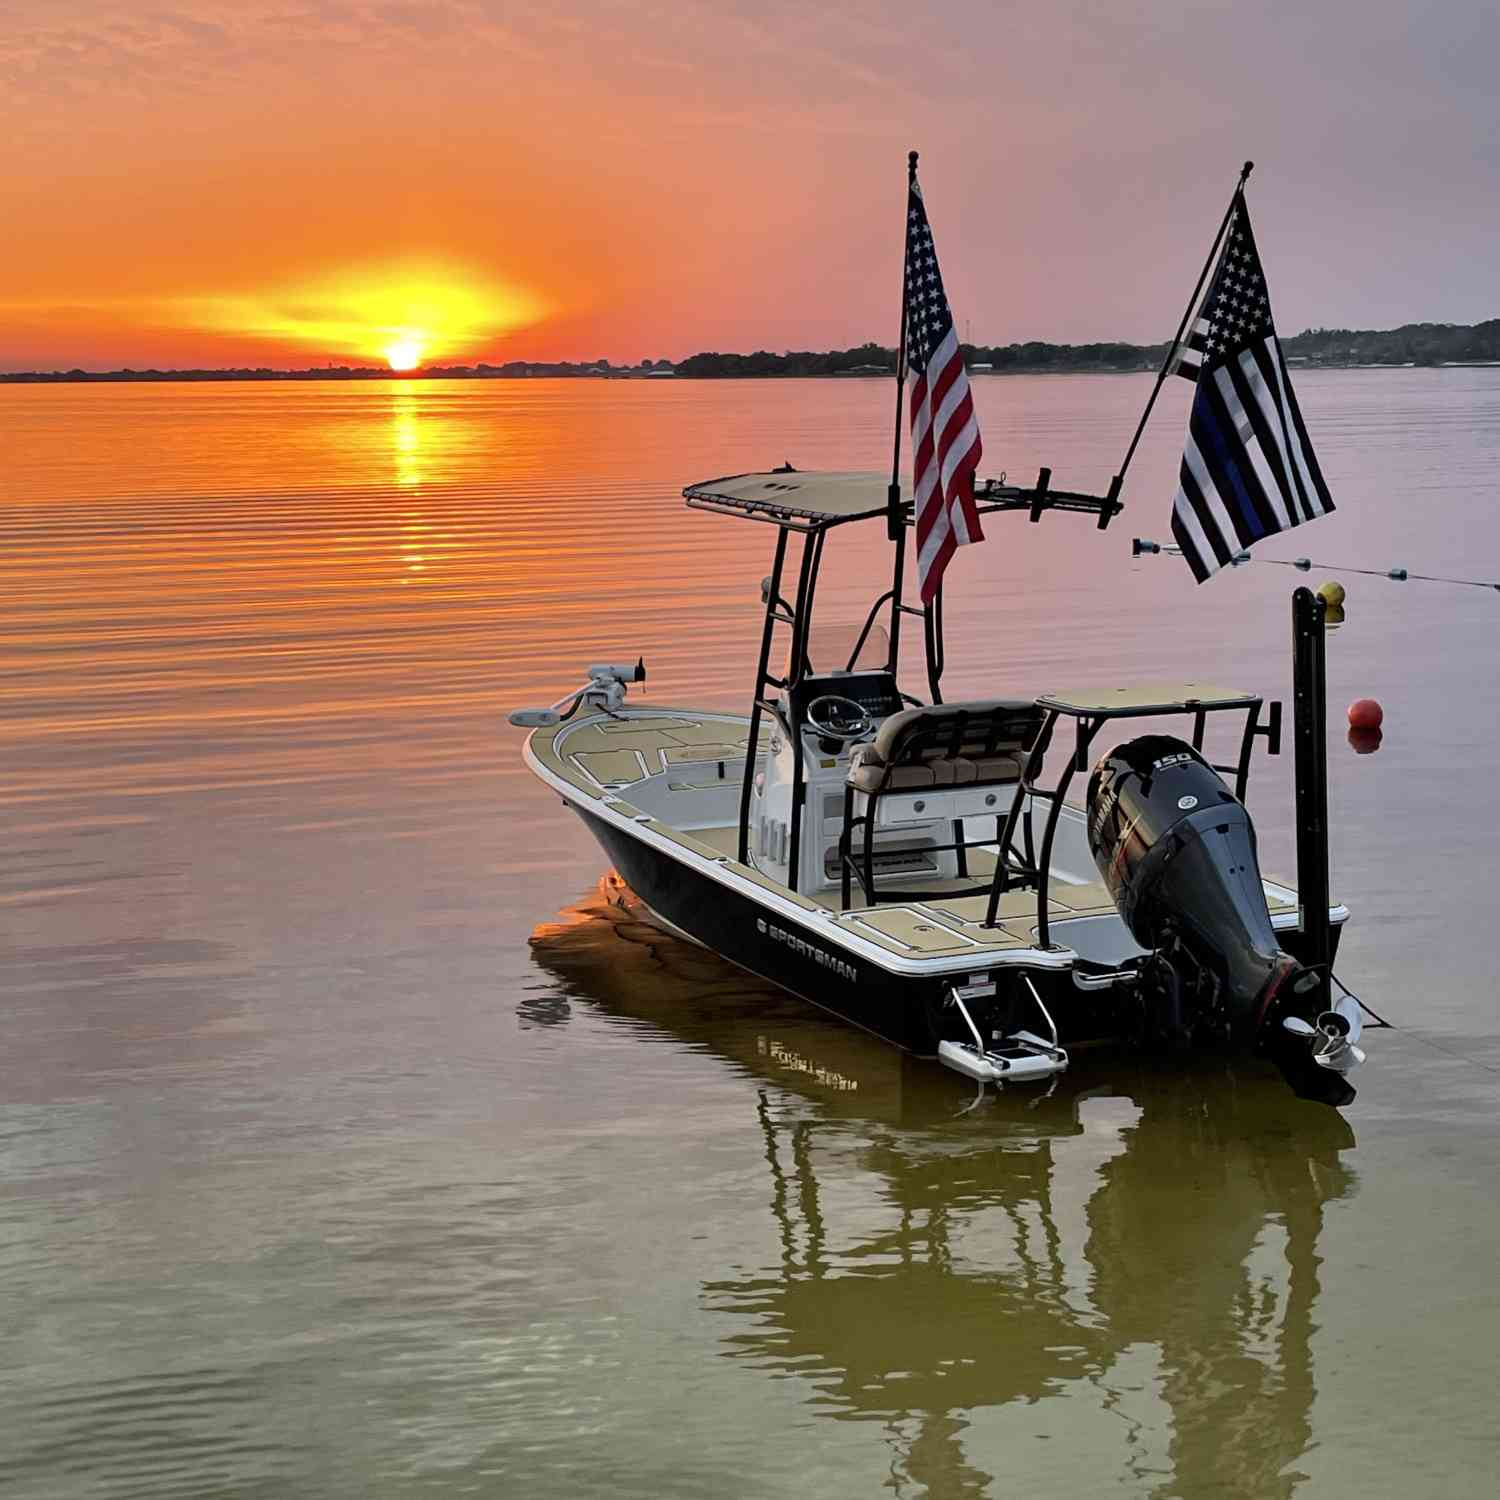 Not sure what is more beautiful the sunset or the boat.